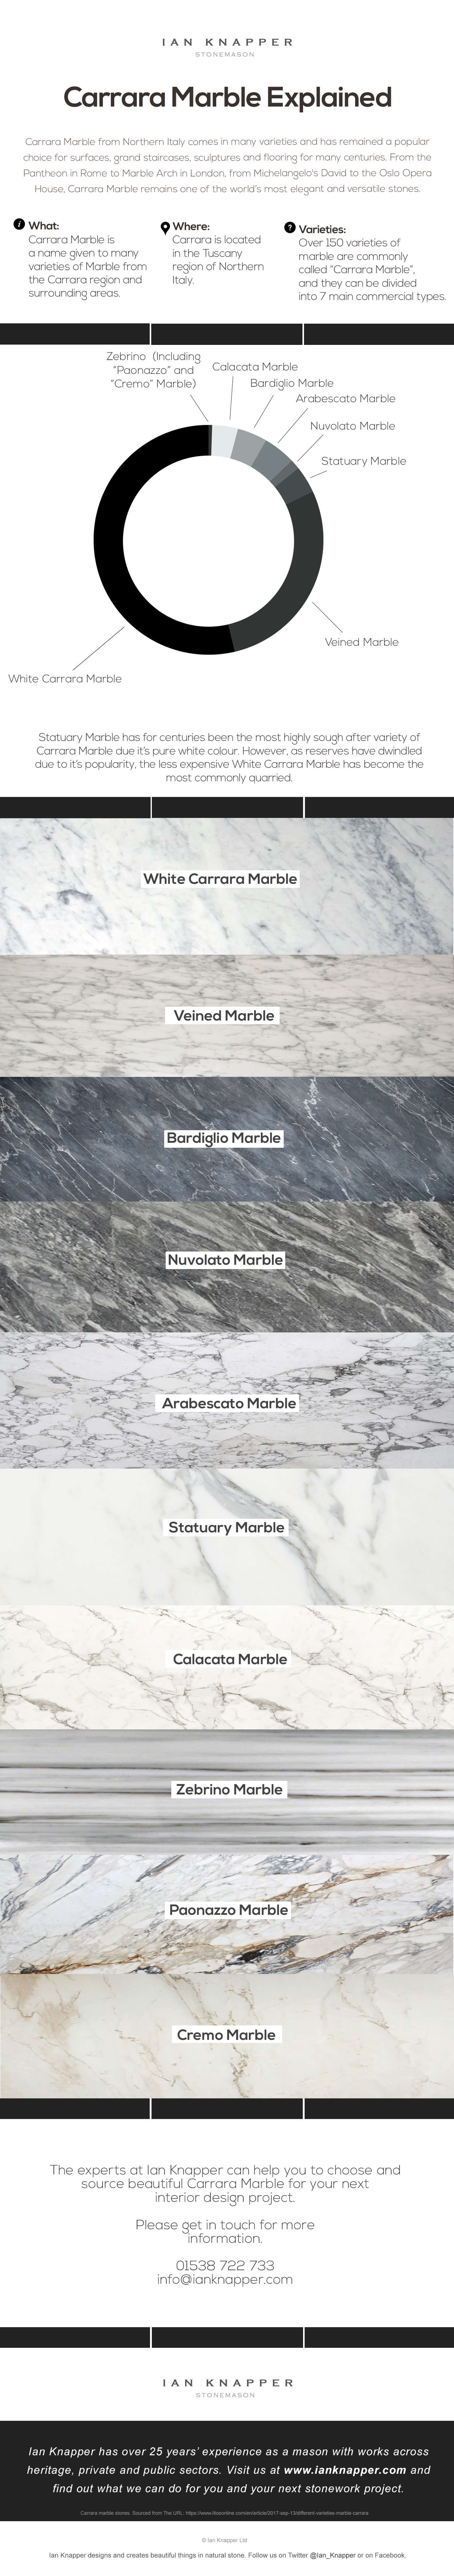 10-top-carrara-marble-stones-and-facts